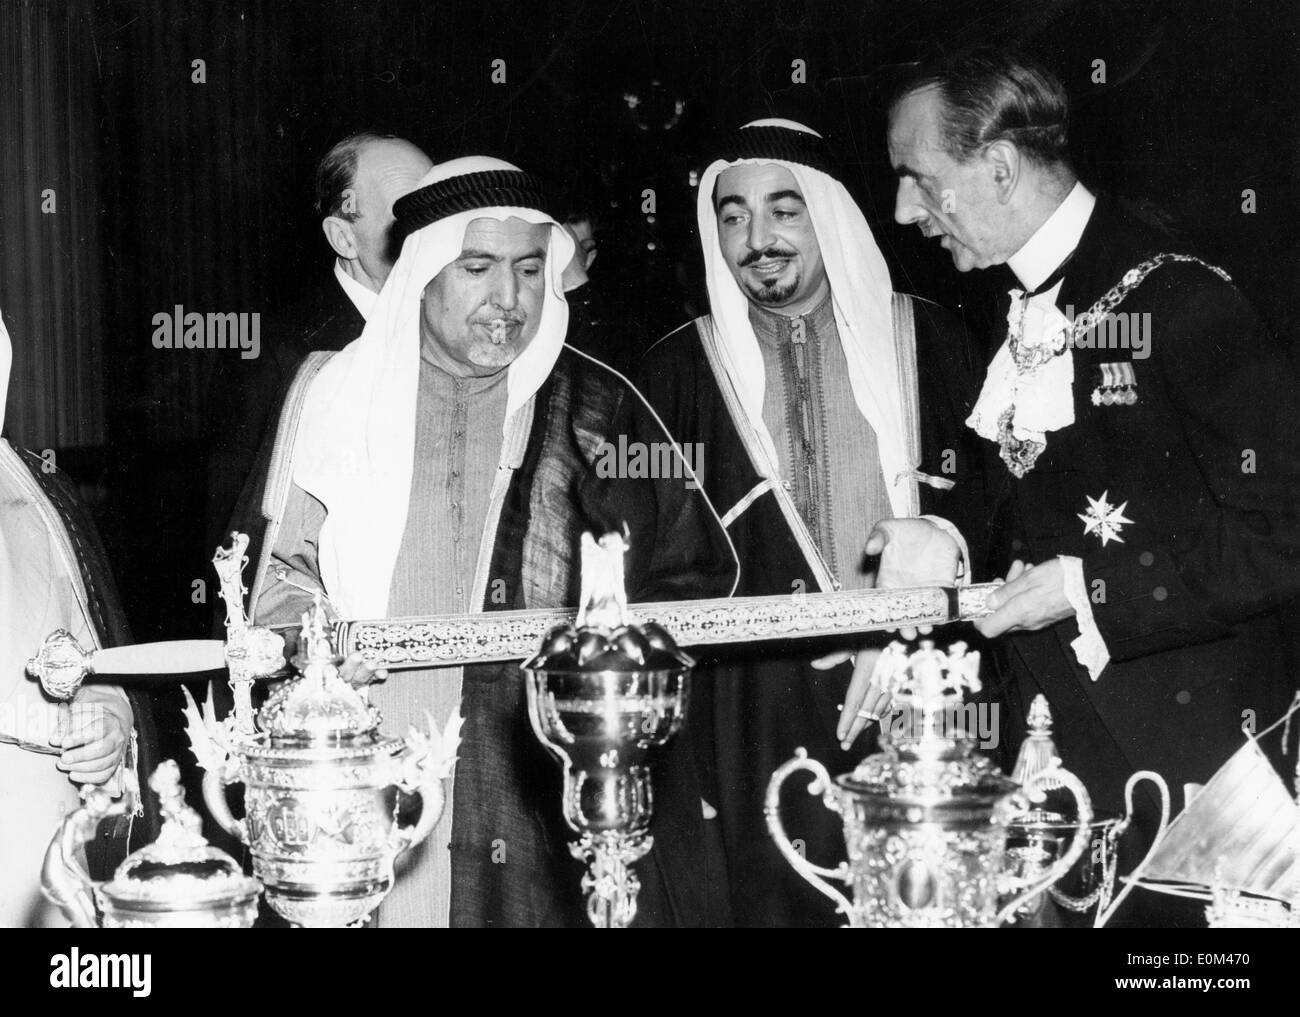 Jun 08, 1953; London, England, UK; LORD MAYOR of London showing the SHEIK of Kuwait the Queen Elizabeth (1553) Pearl Sword. - Stock Image